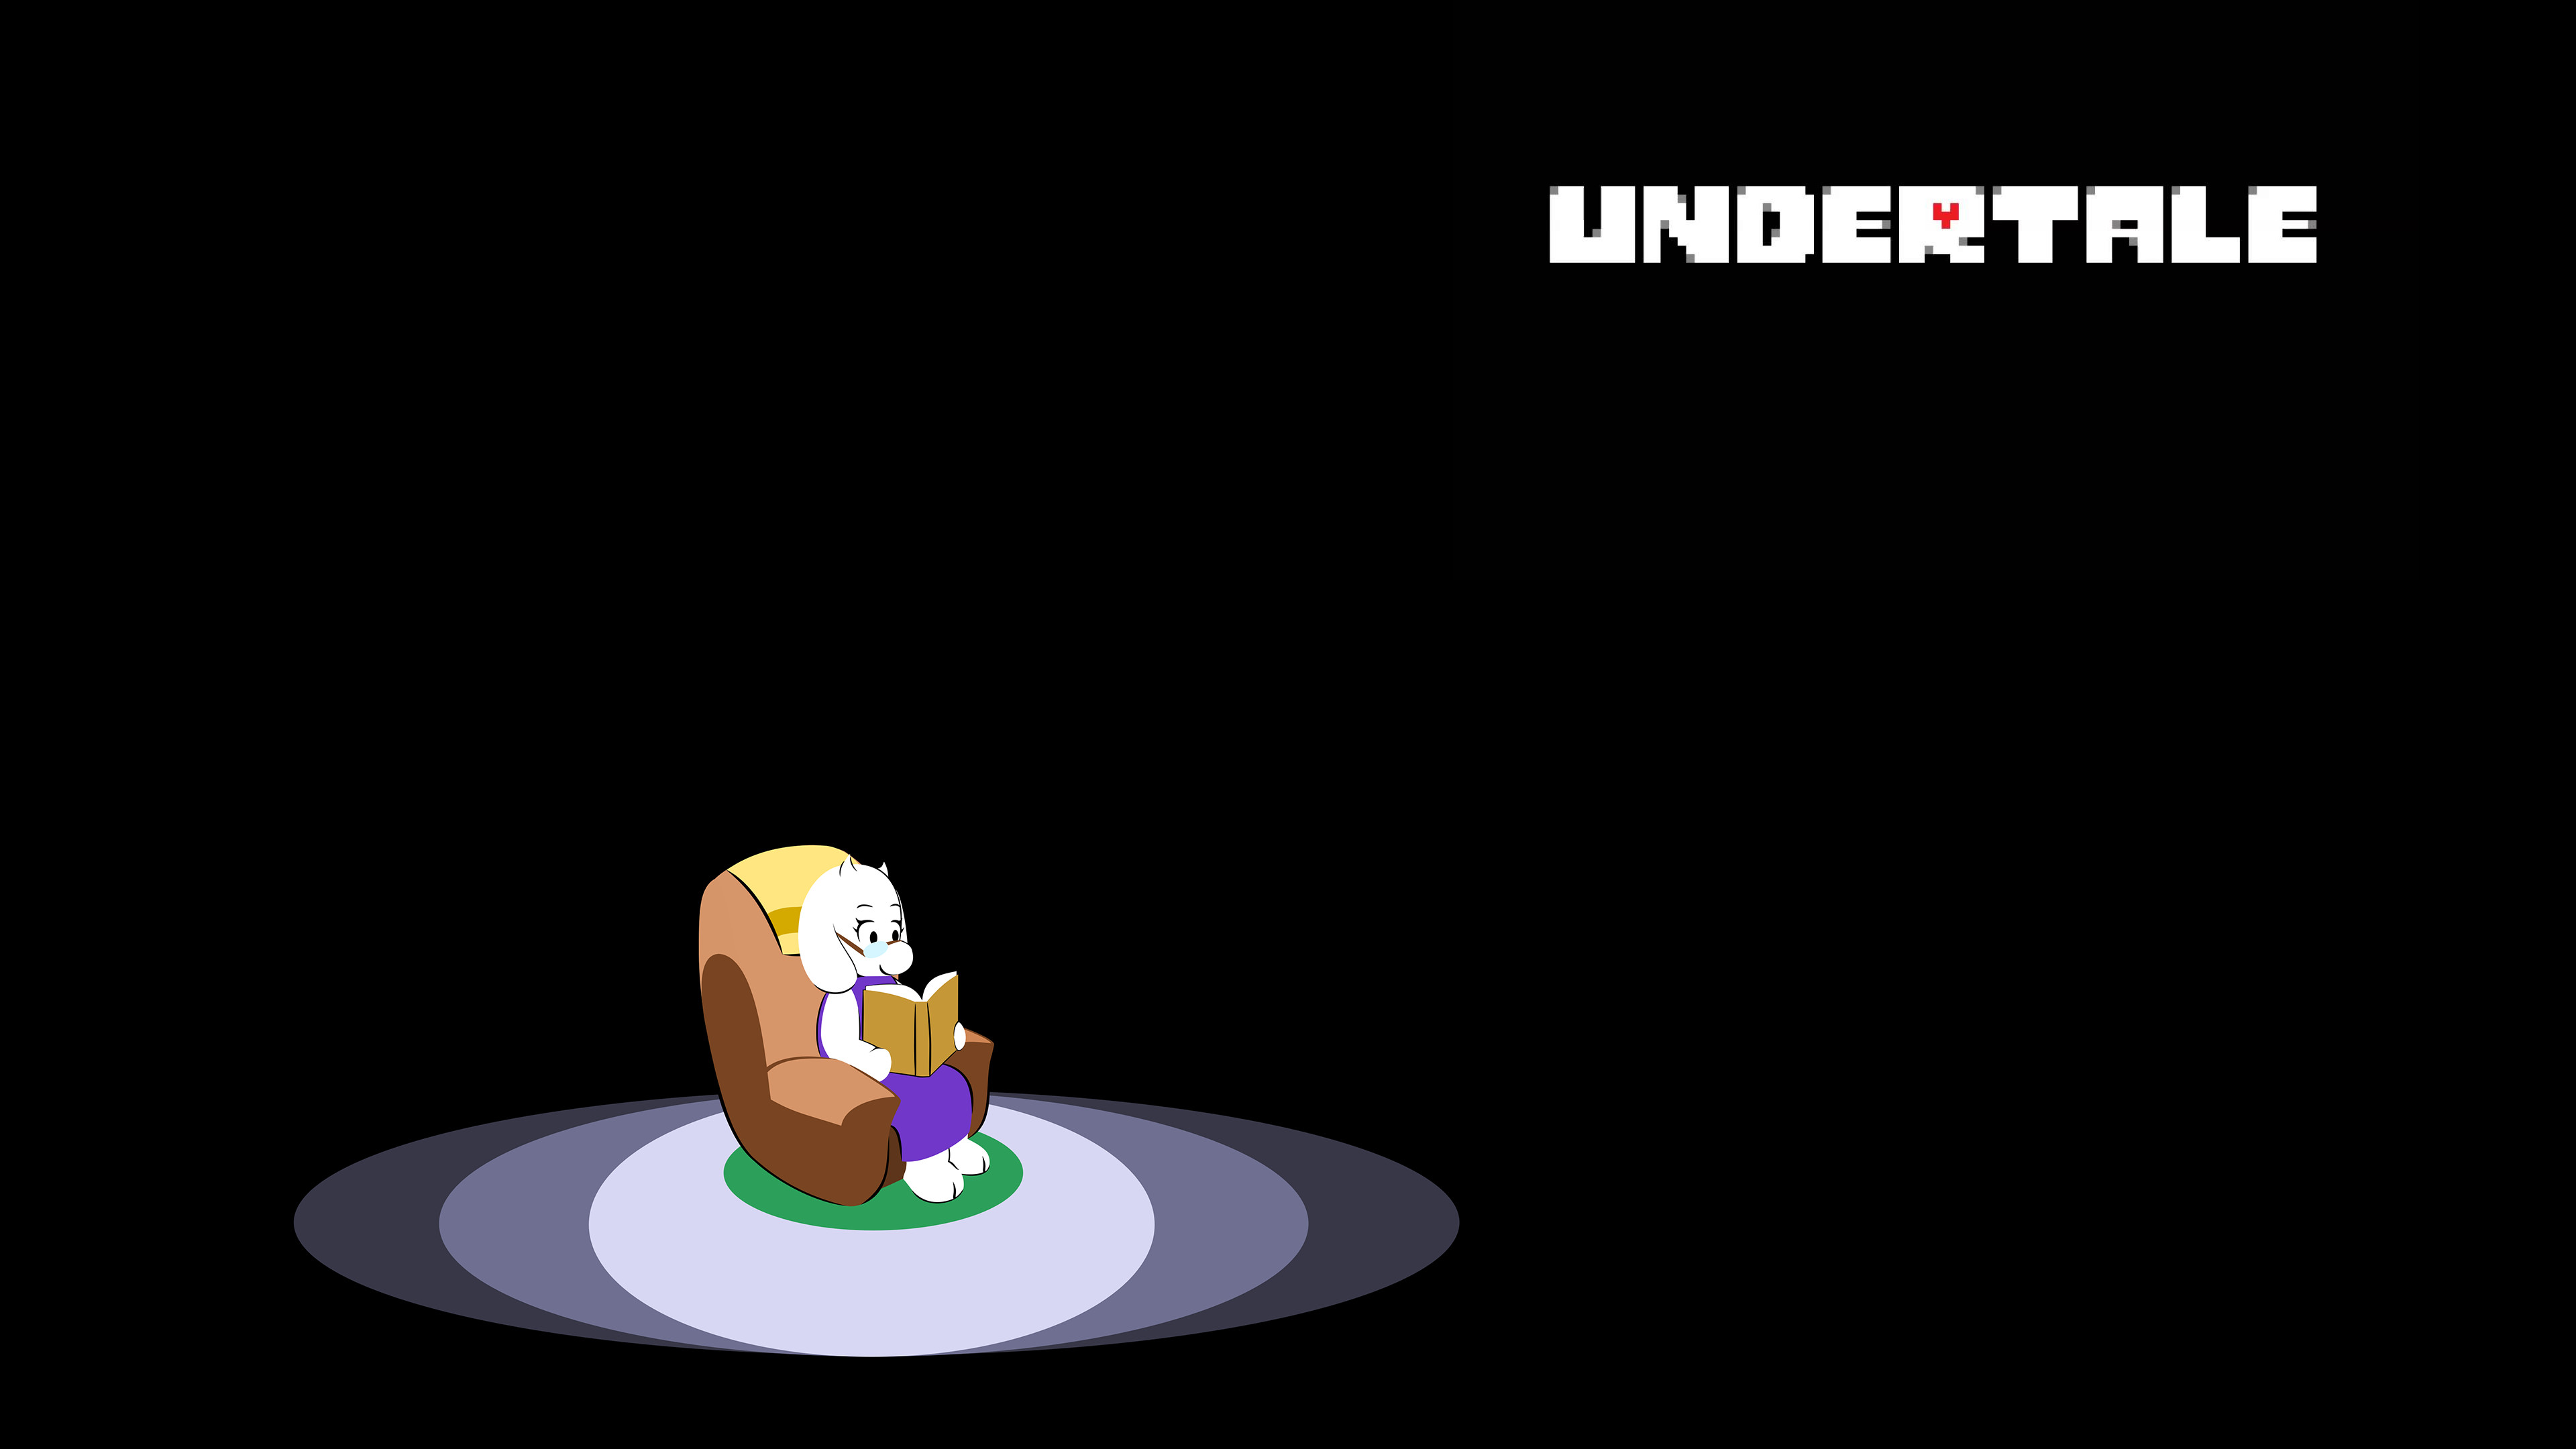 3840x2160 undertale live wallpaper download #810779